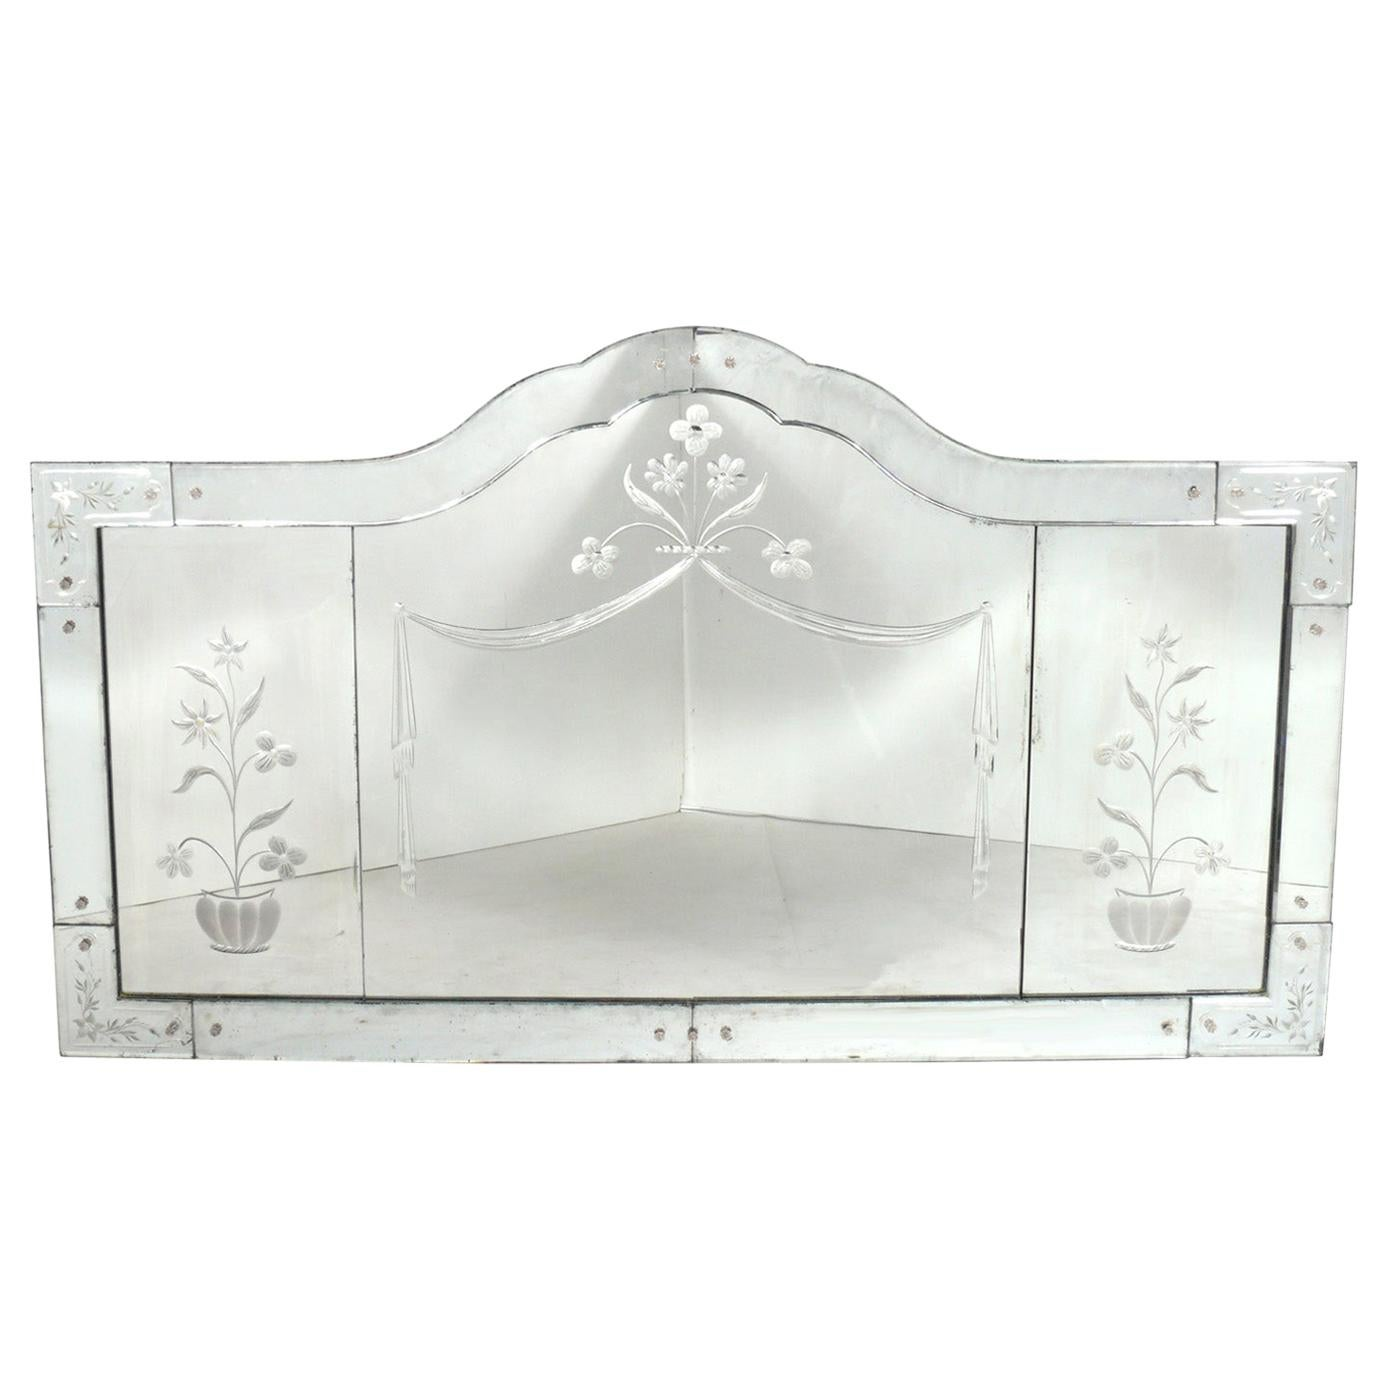 Large Venetian Mirror with Etched Floral Decoration